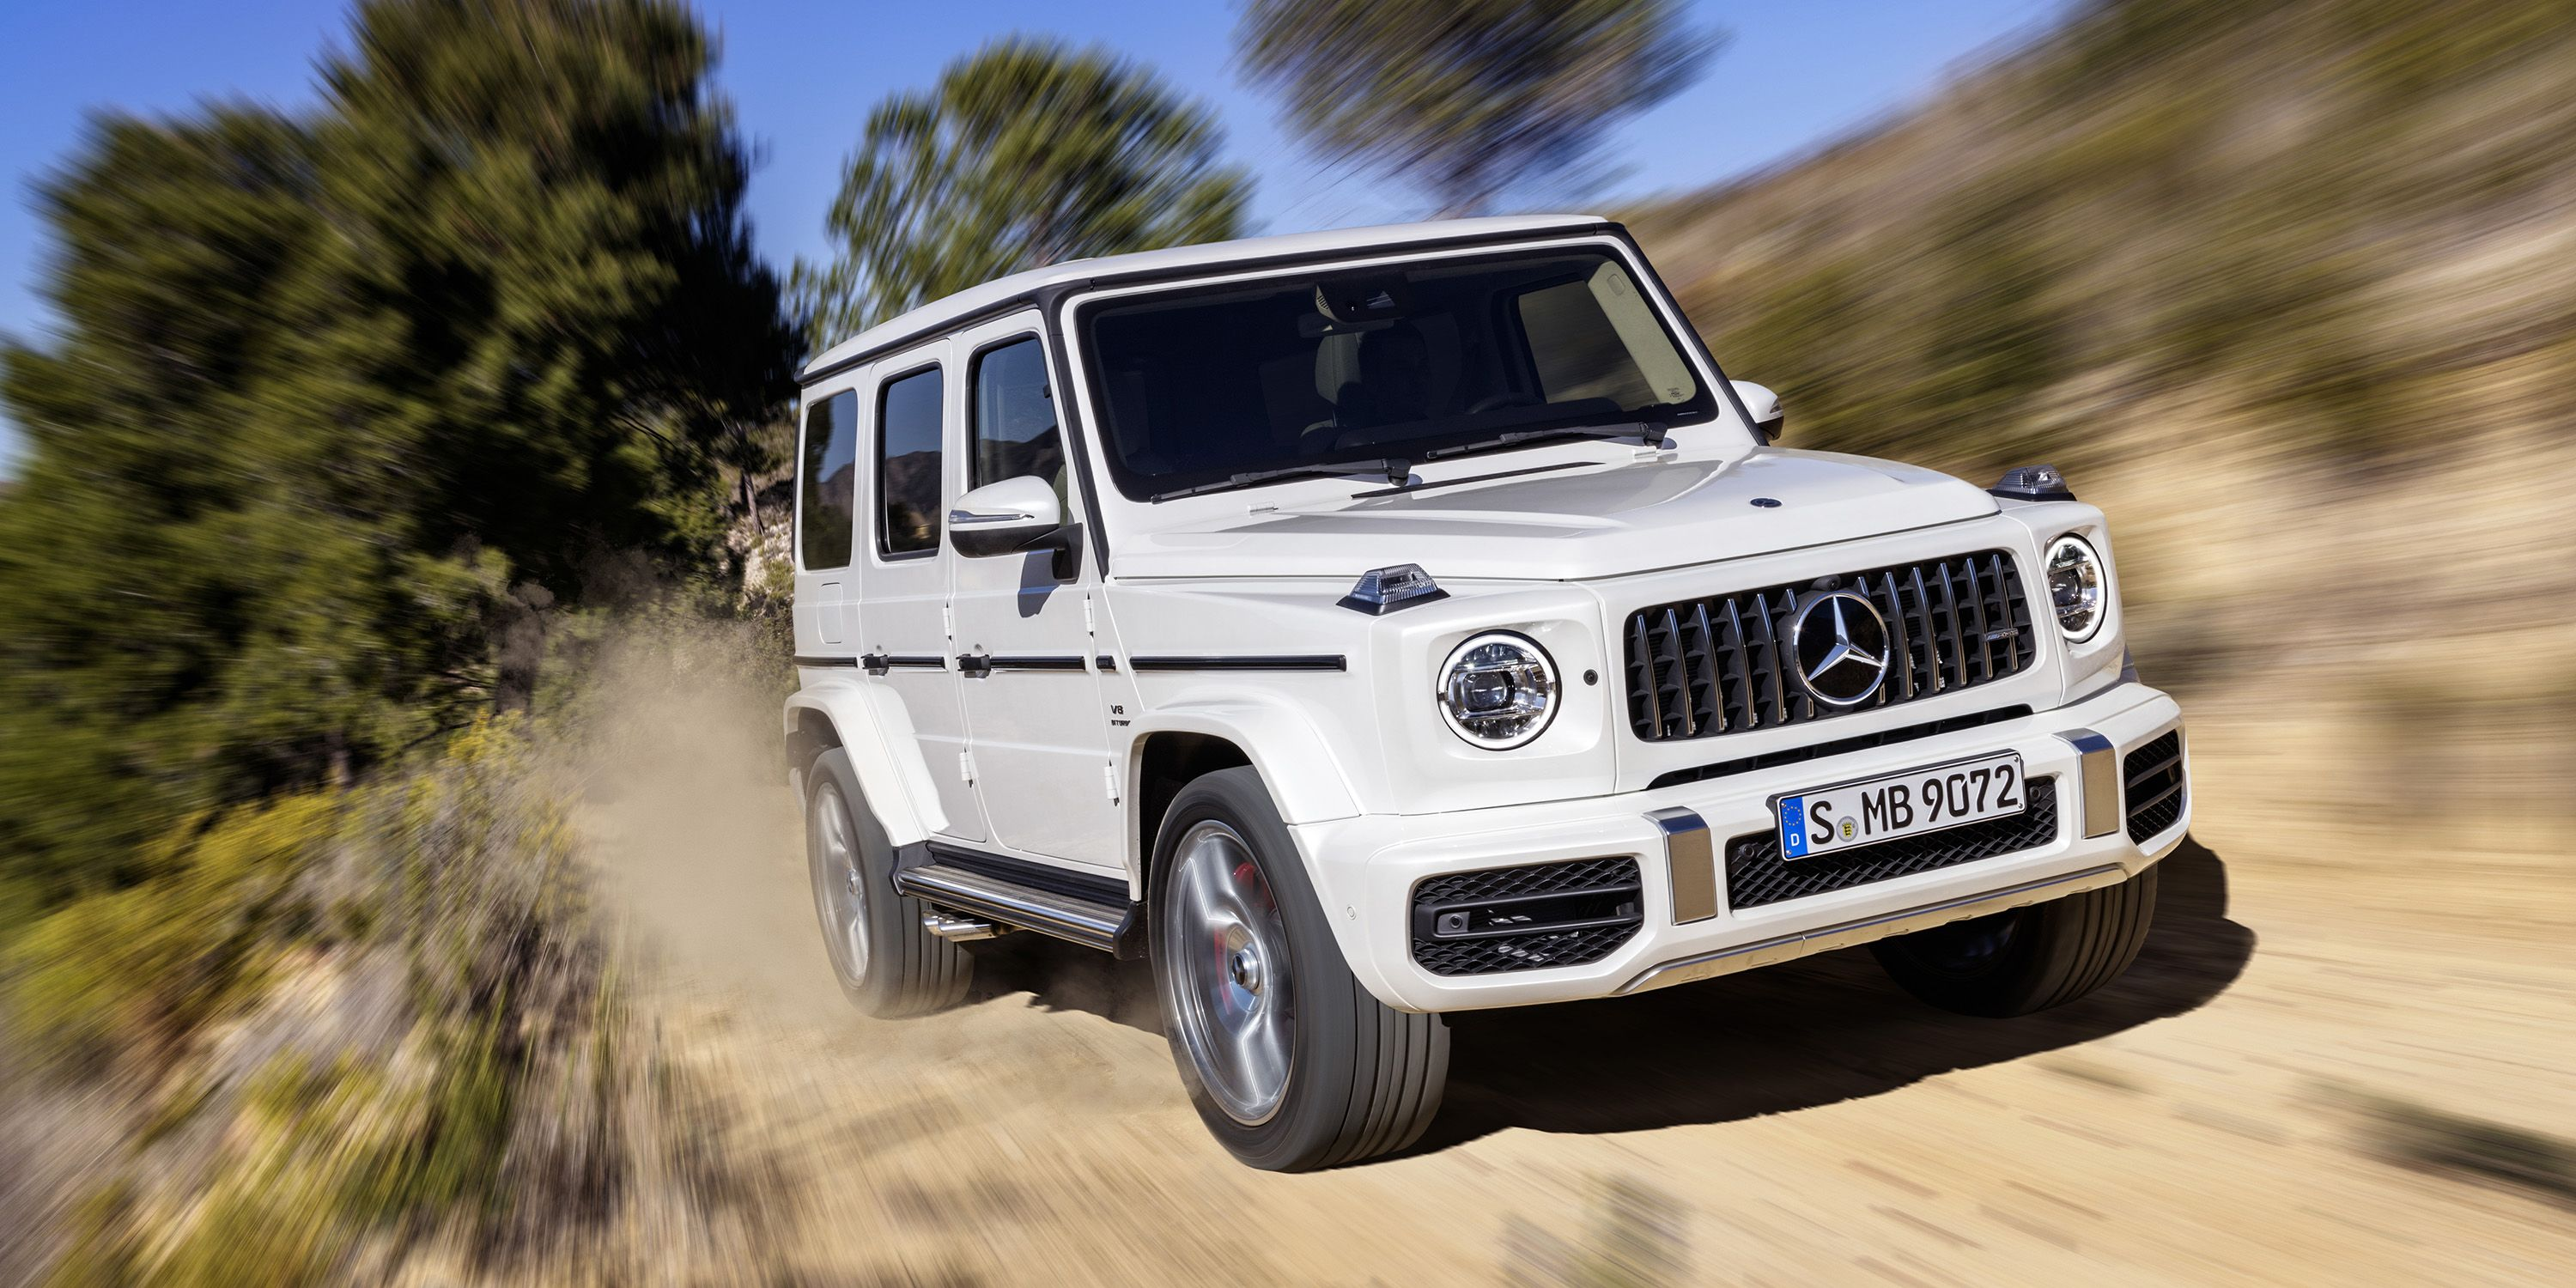 Why The G Wagen Had To Change